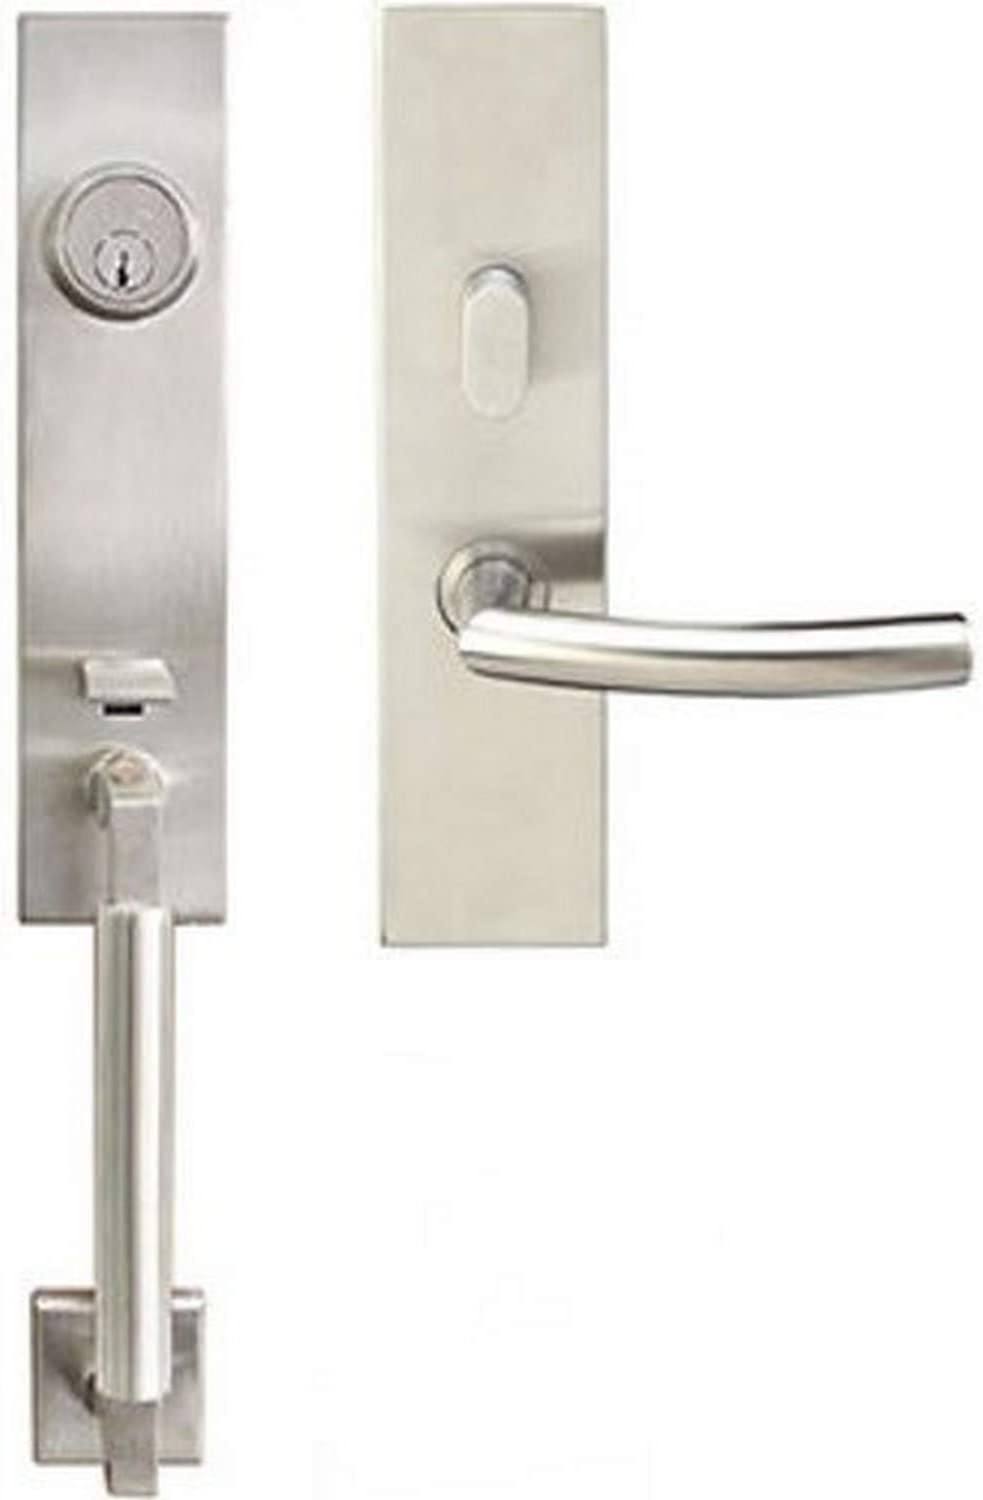 Full Dummy Left Polished Stainless Steel Champagne Lever INOX MH214TDP-32-LH MH Handleset Tubular